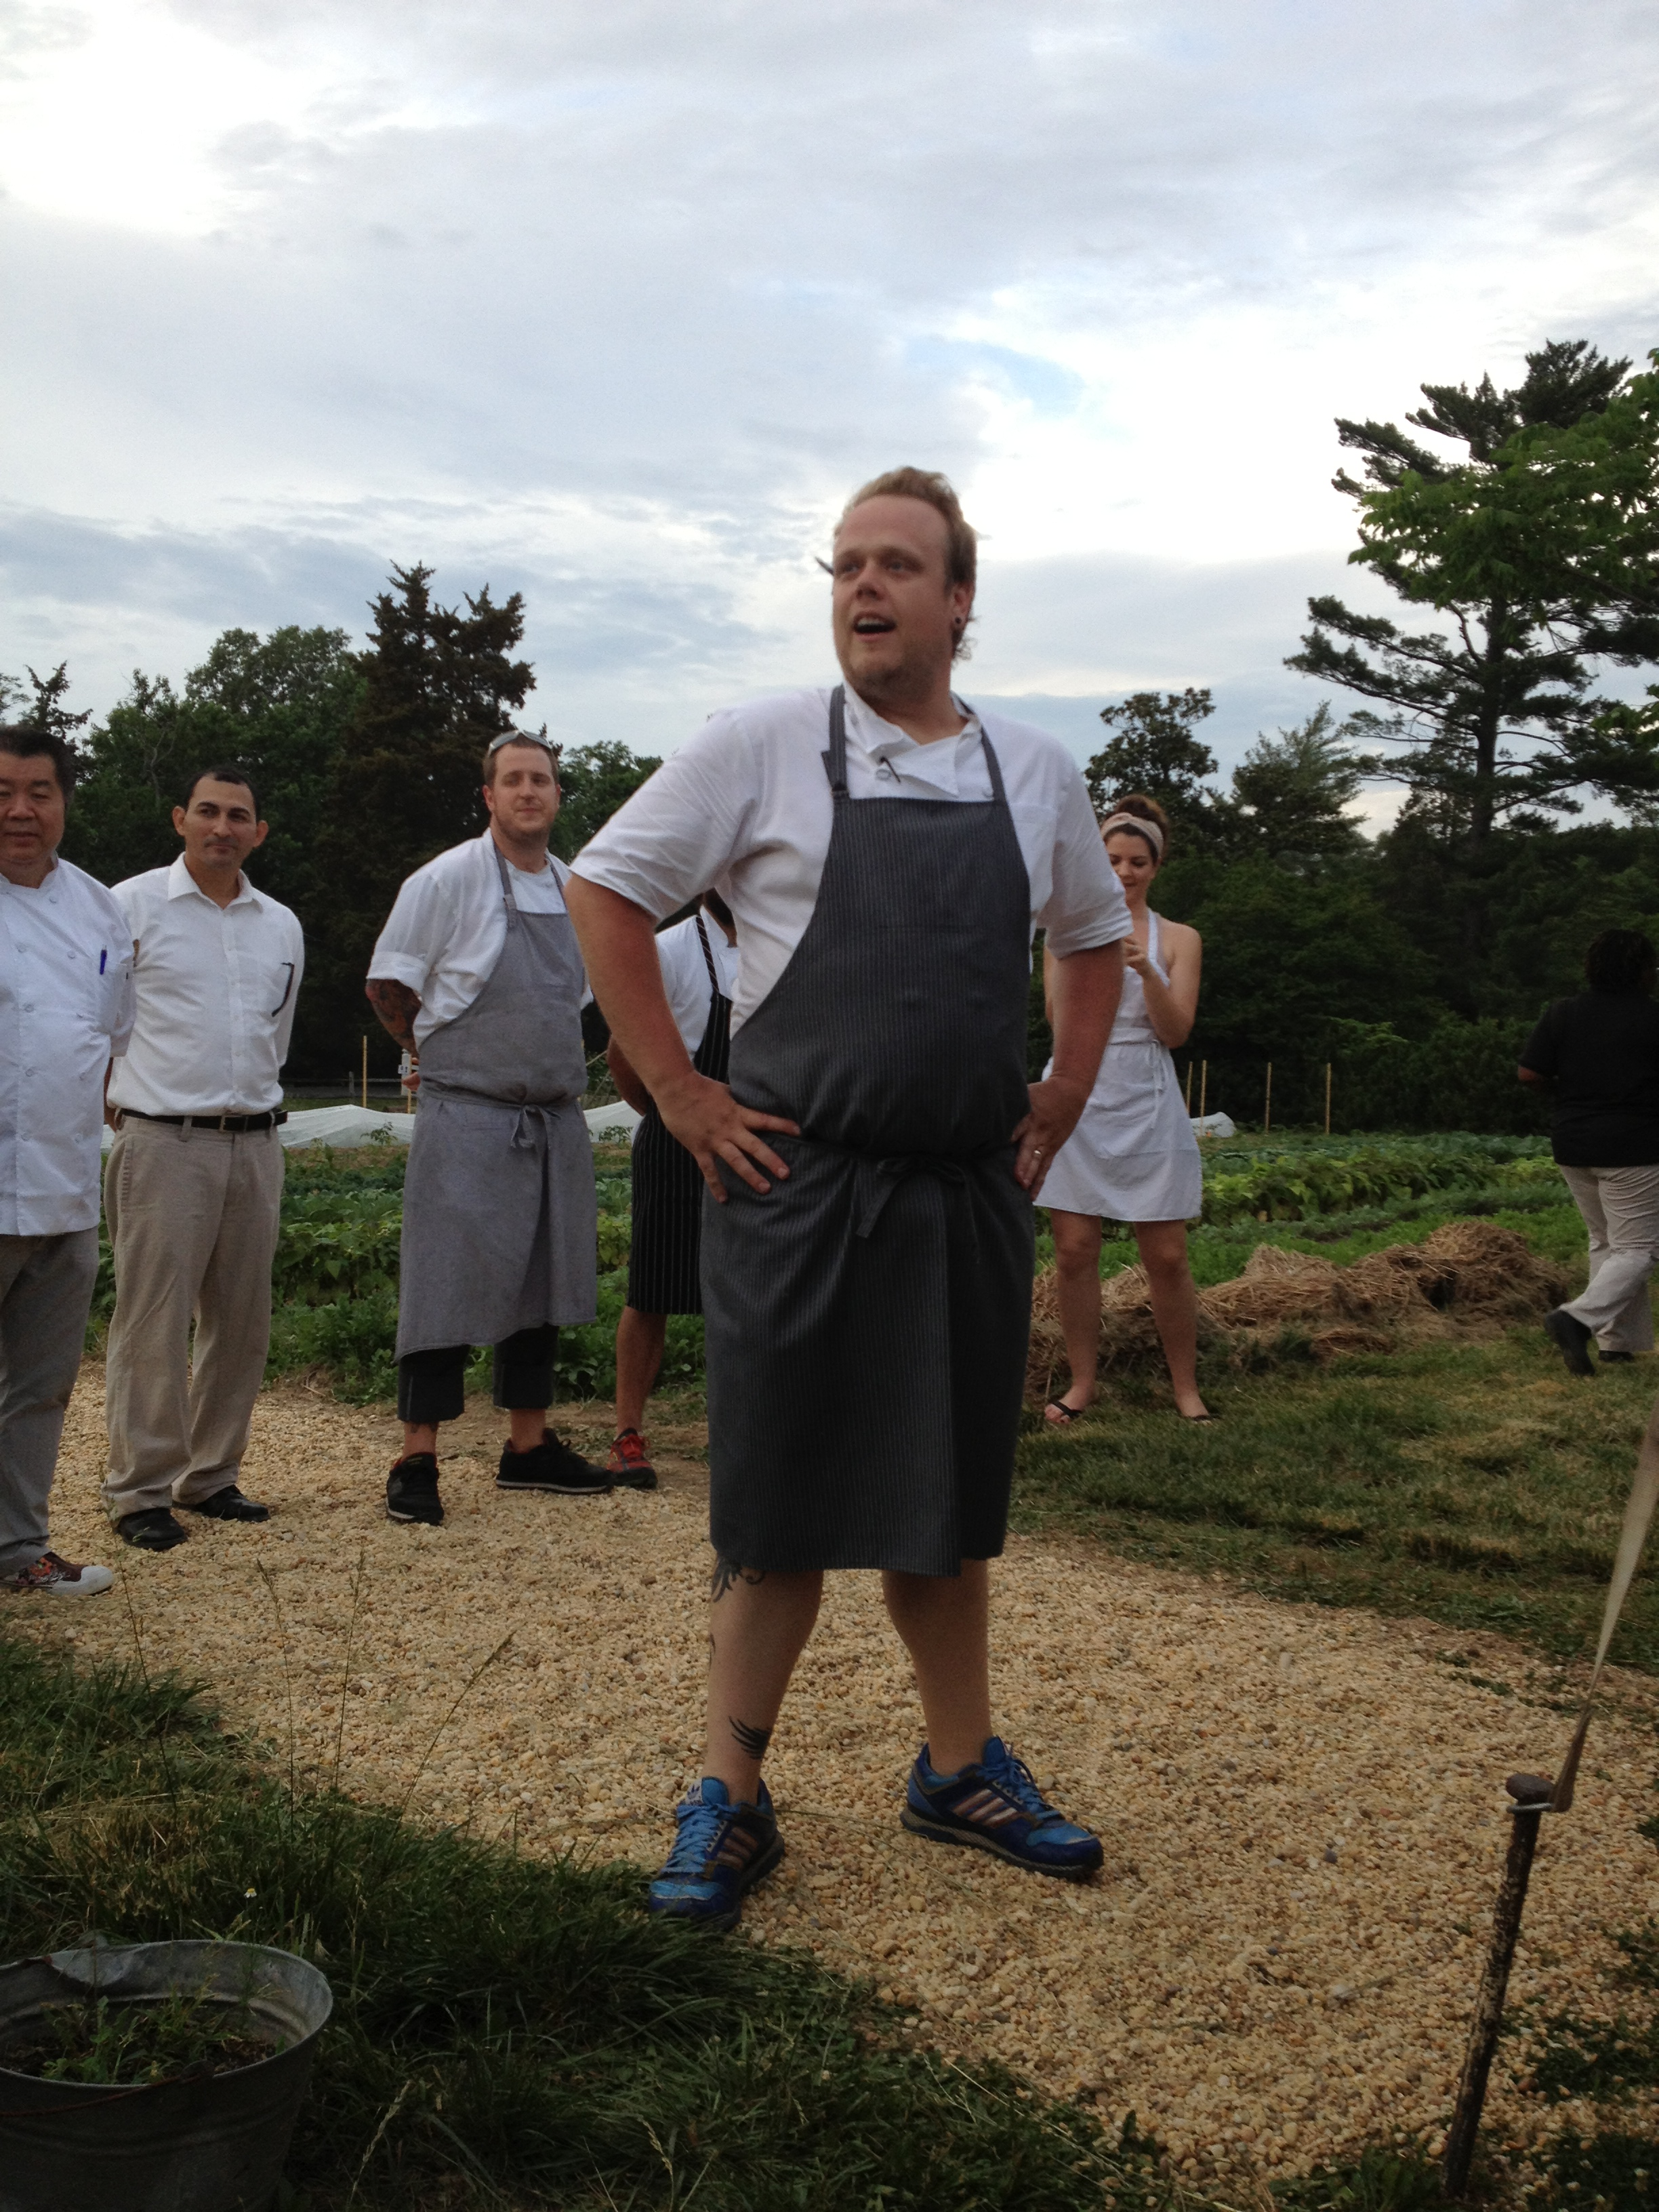 Chef Chittum proudly stands with his staff after the farm dinner